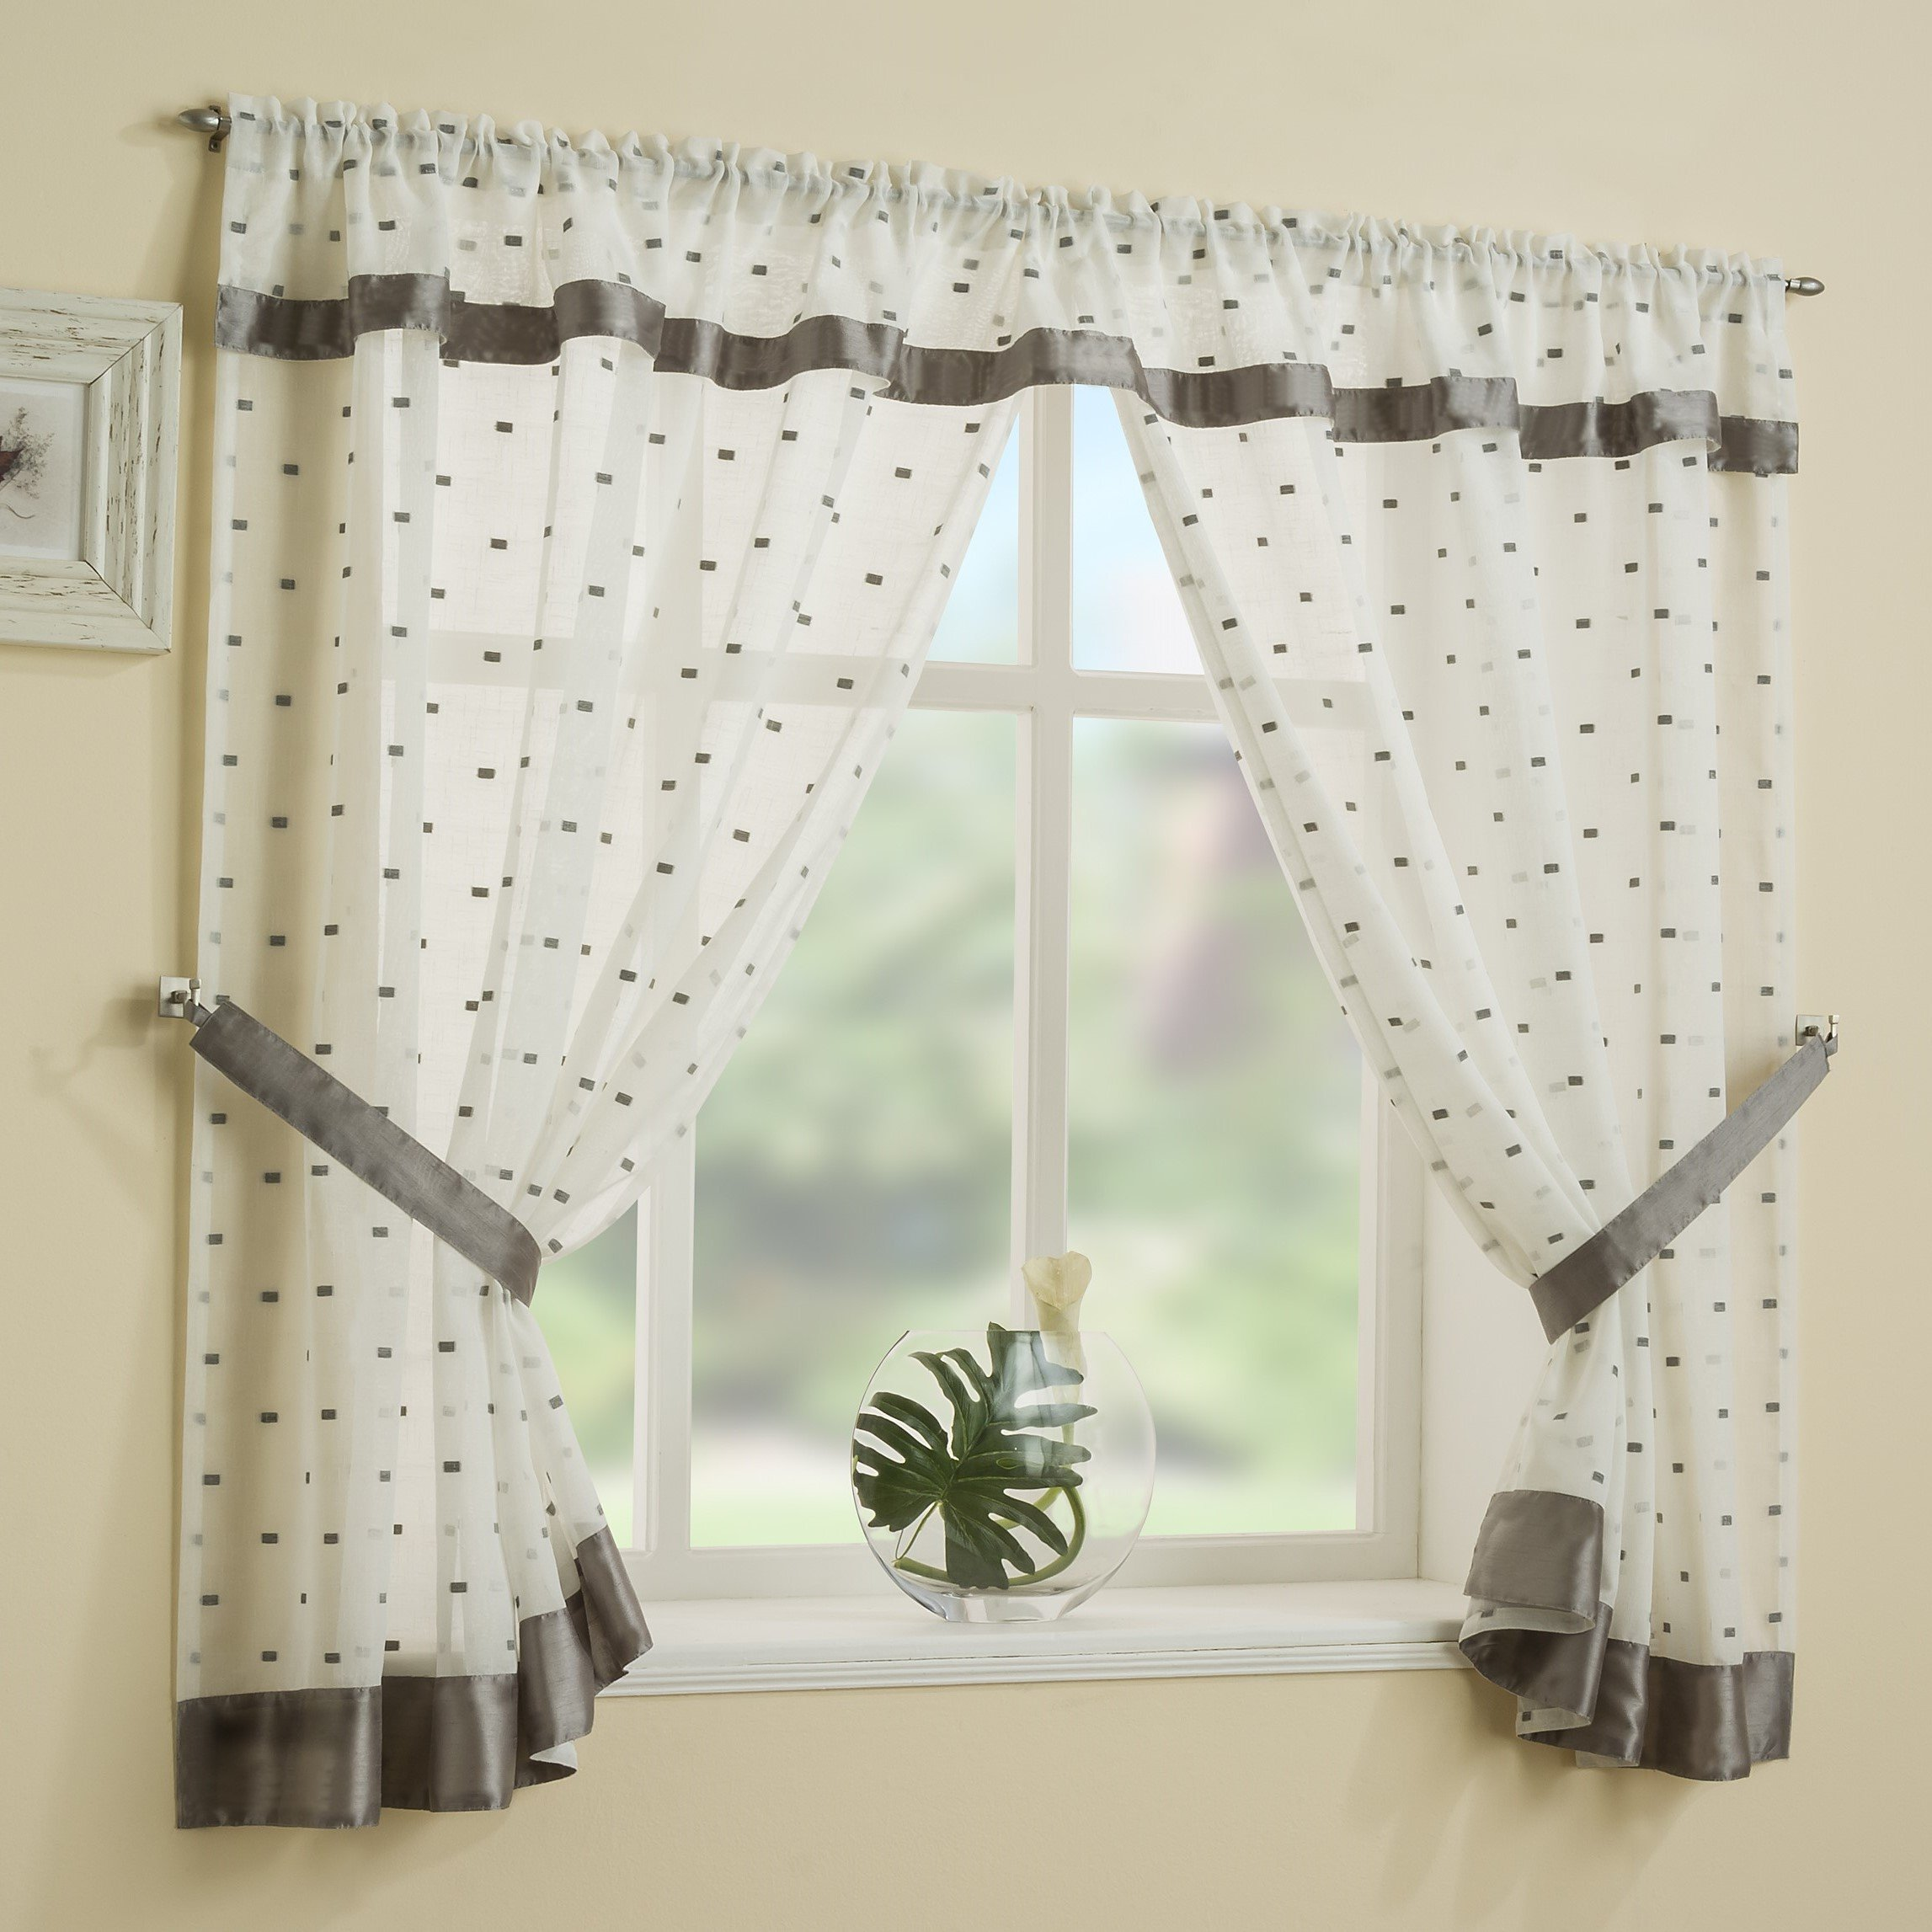 Silver Grey Linen Look Window Set Bathroom Kitchen Curtains Squares Off White 53x48 Inches Drop 135cm